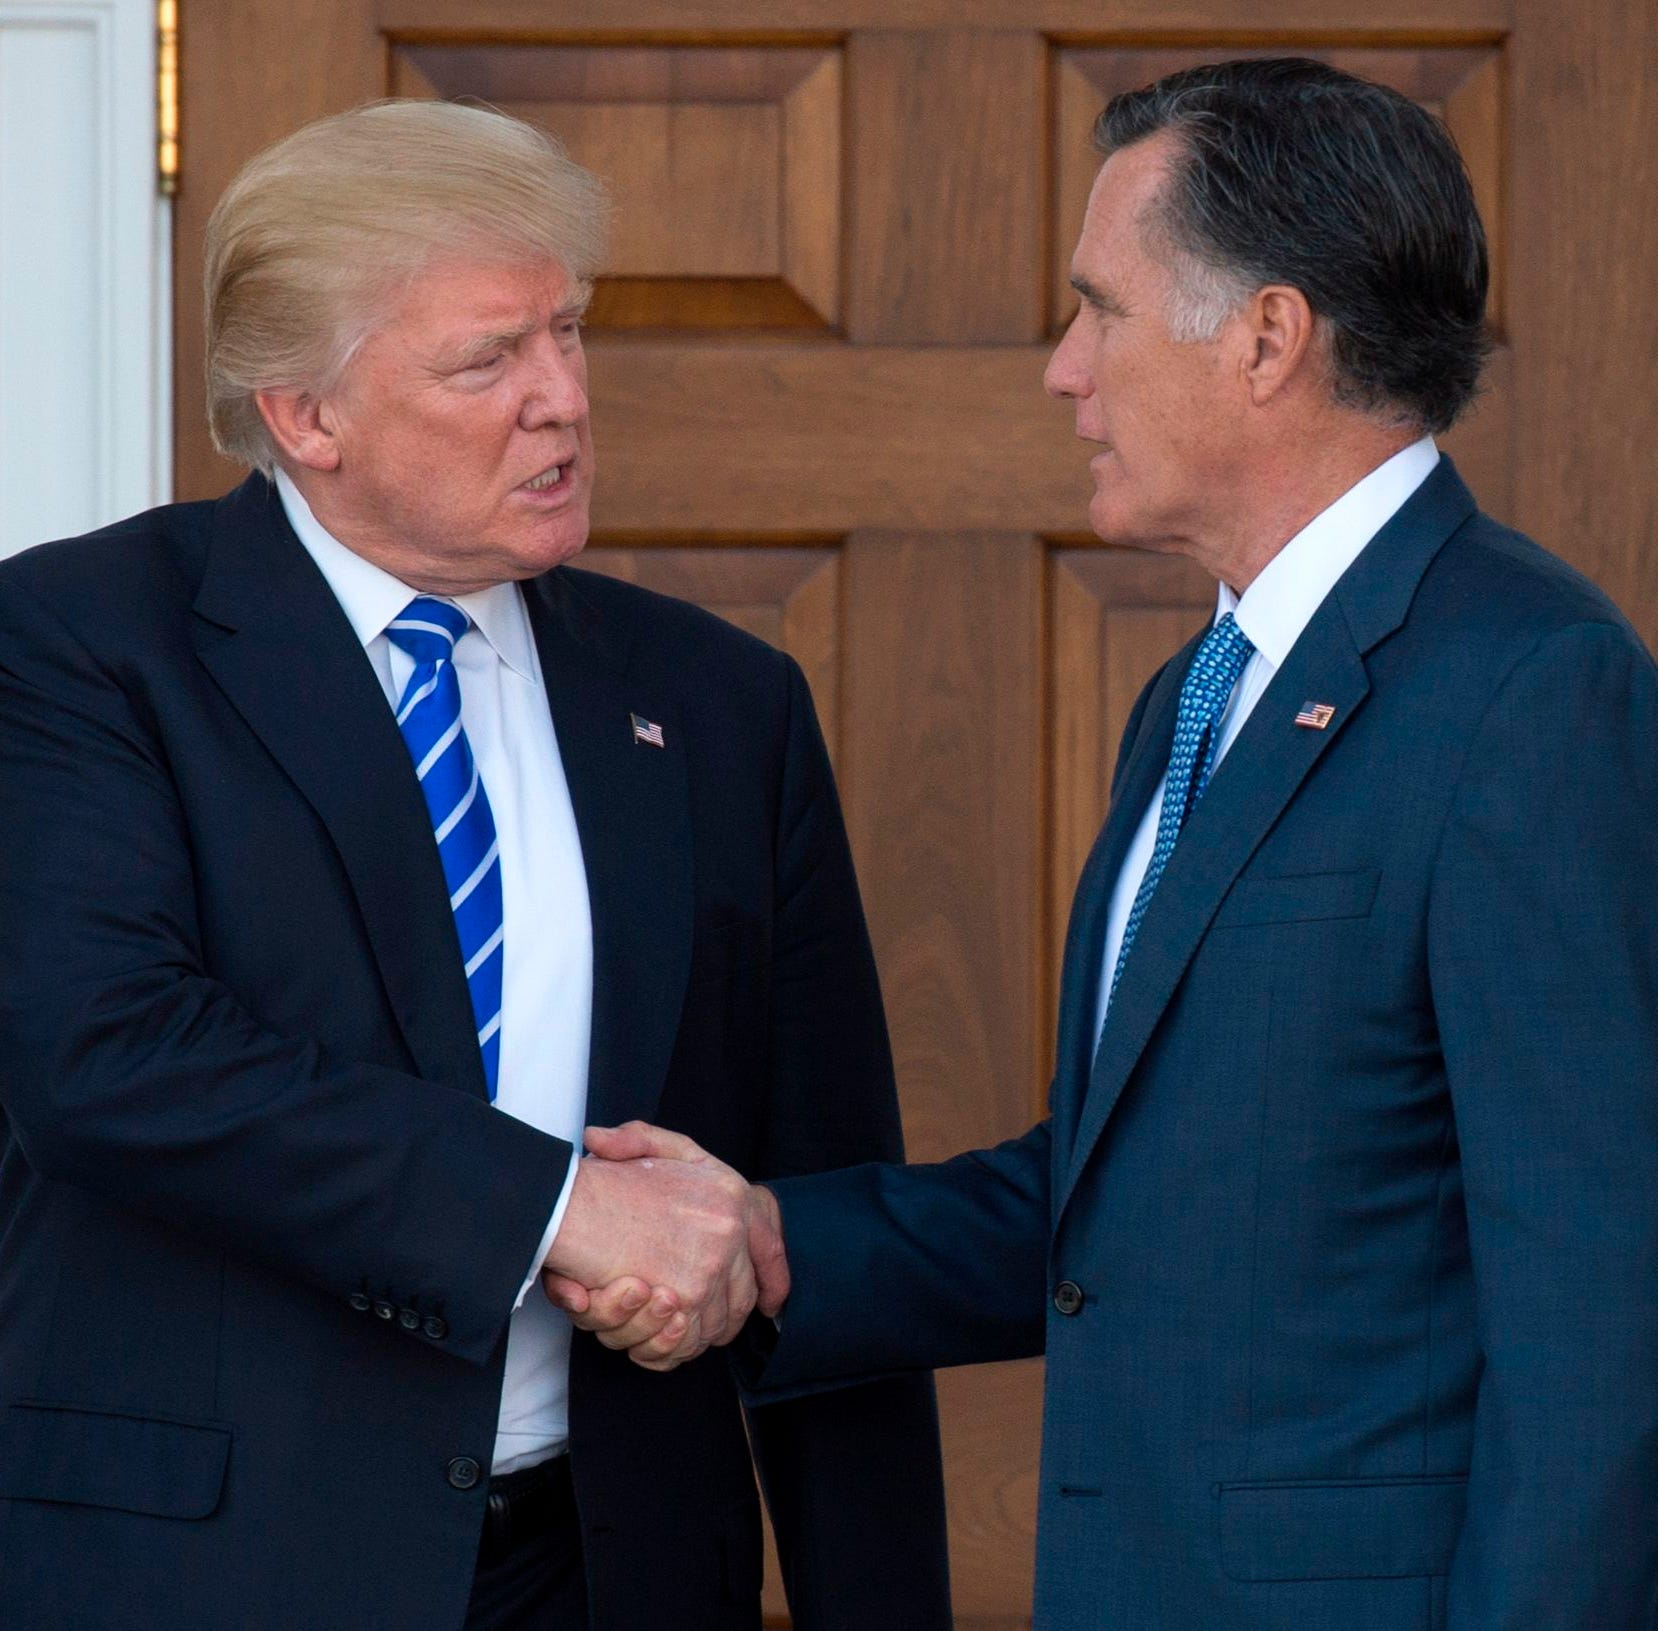 GOP Sen. Mitt Romney: 'I am sickened' over Trump's conduct revealed in Mueller report